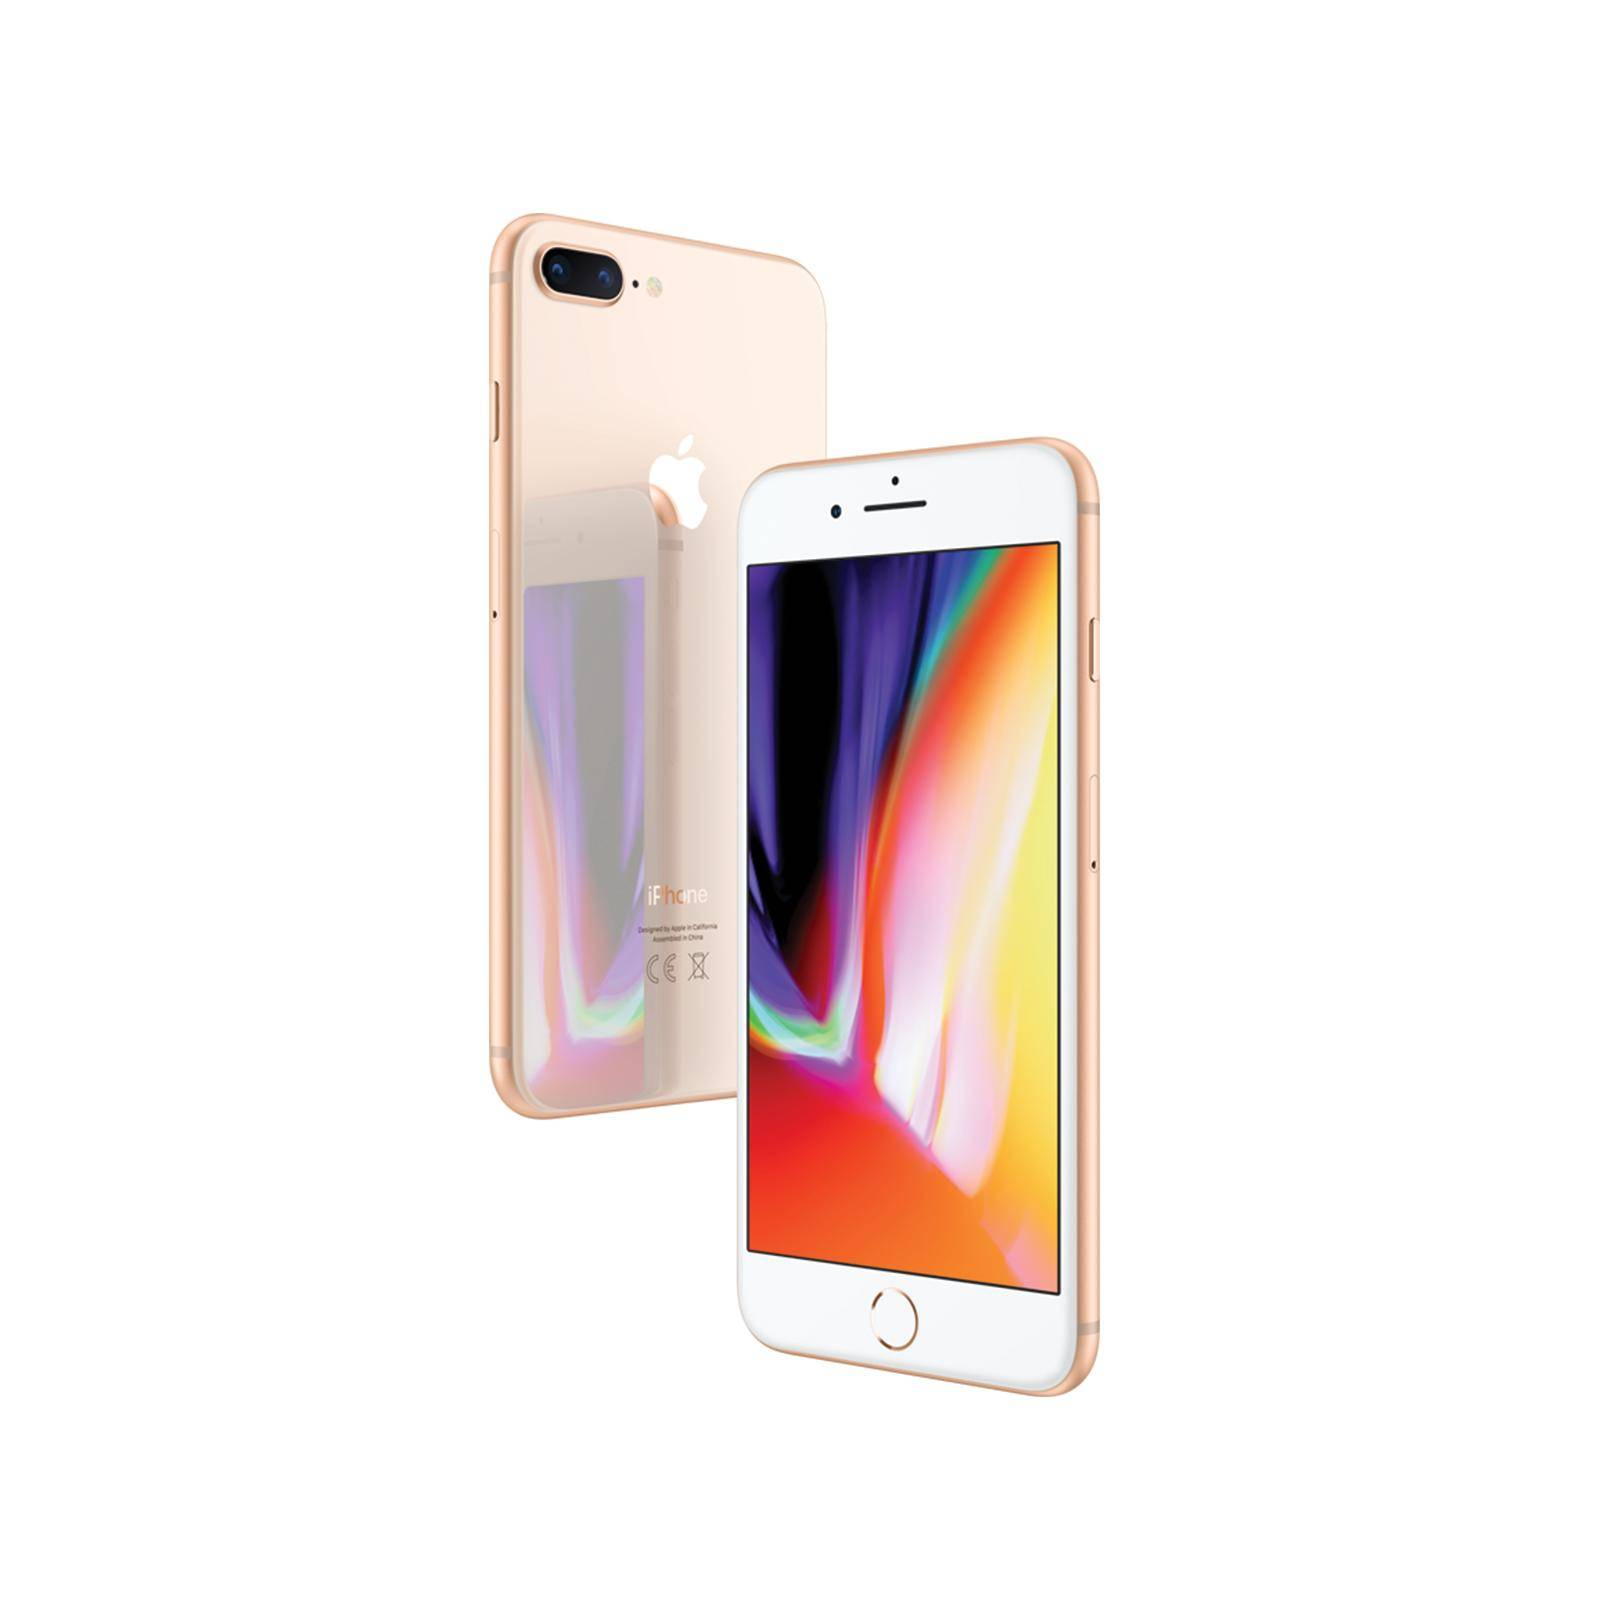 APPLE IPHONE 8 64GB GOLD iOS 11 FOTOCAMERA 12MP 4.7